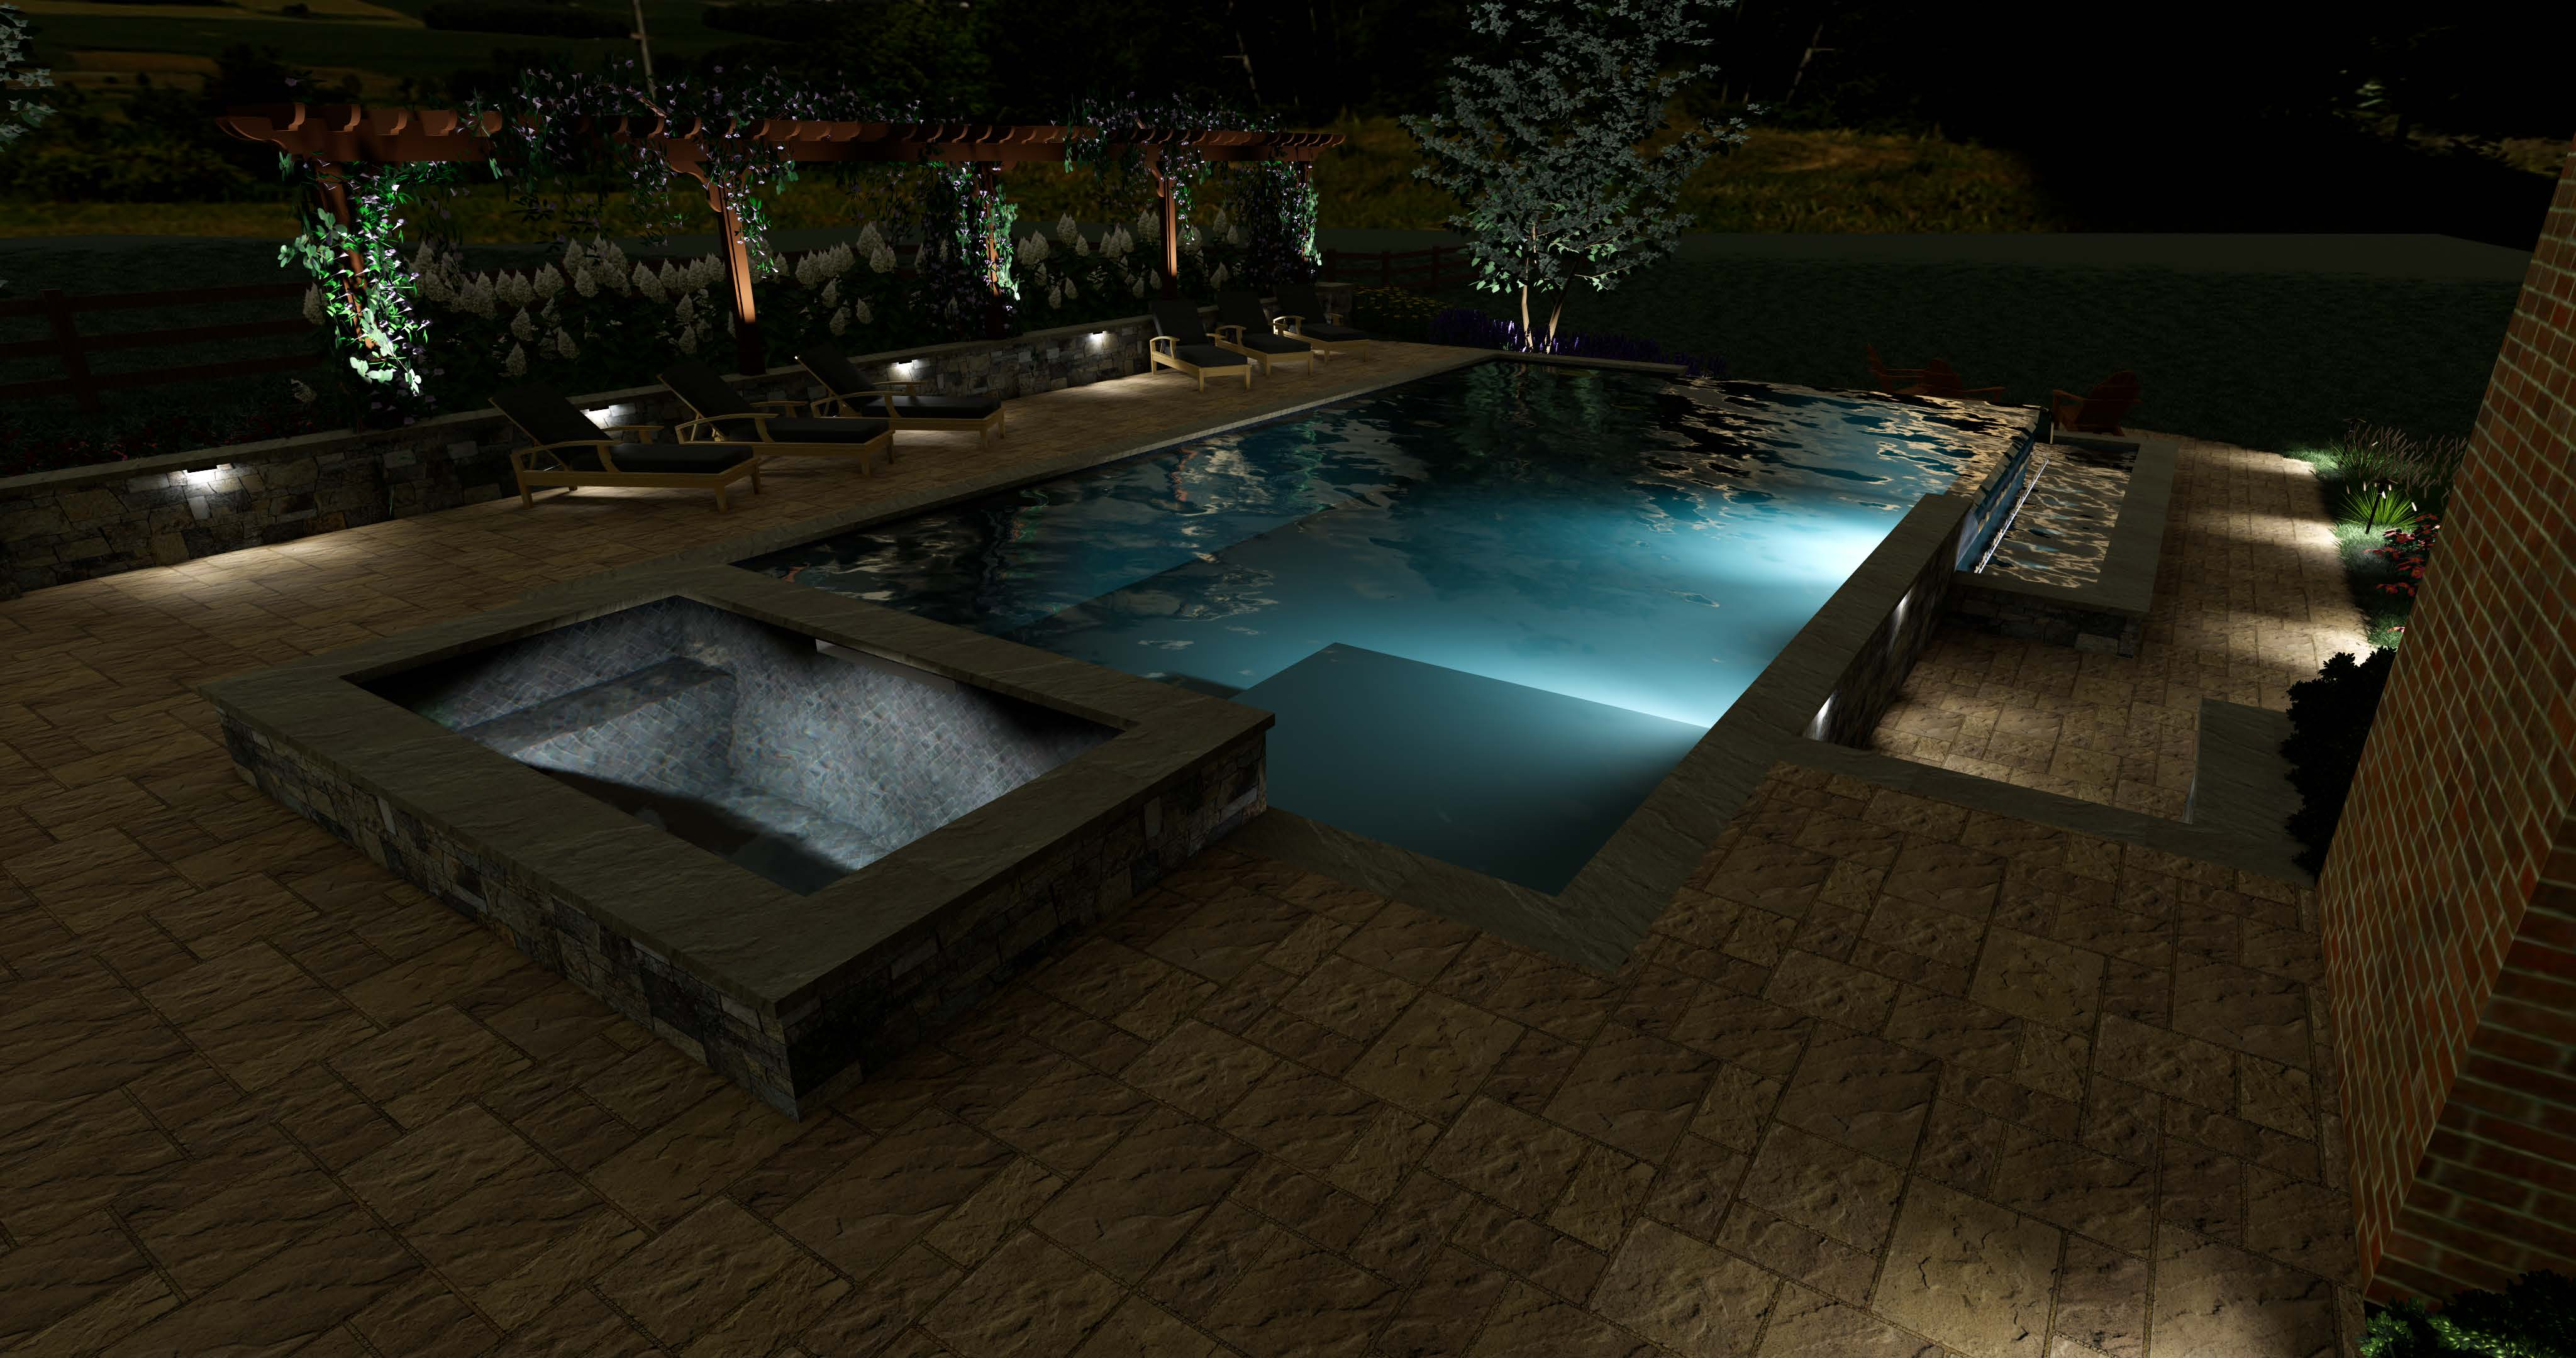 3D pool design at night by Rock Water Farm